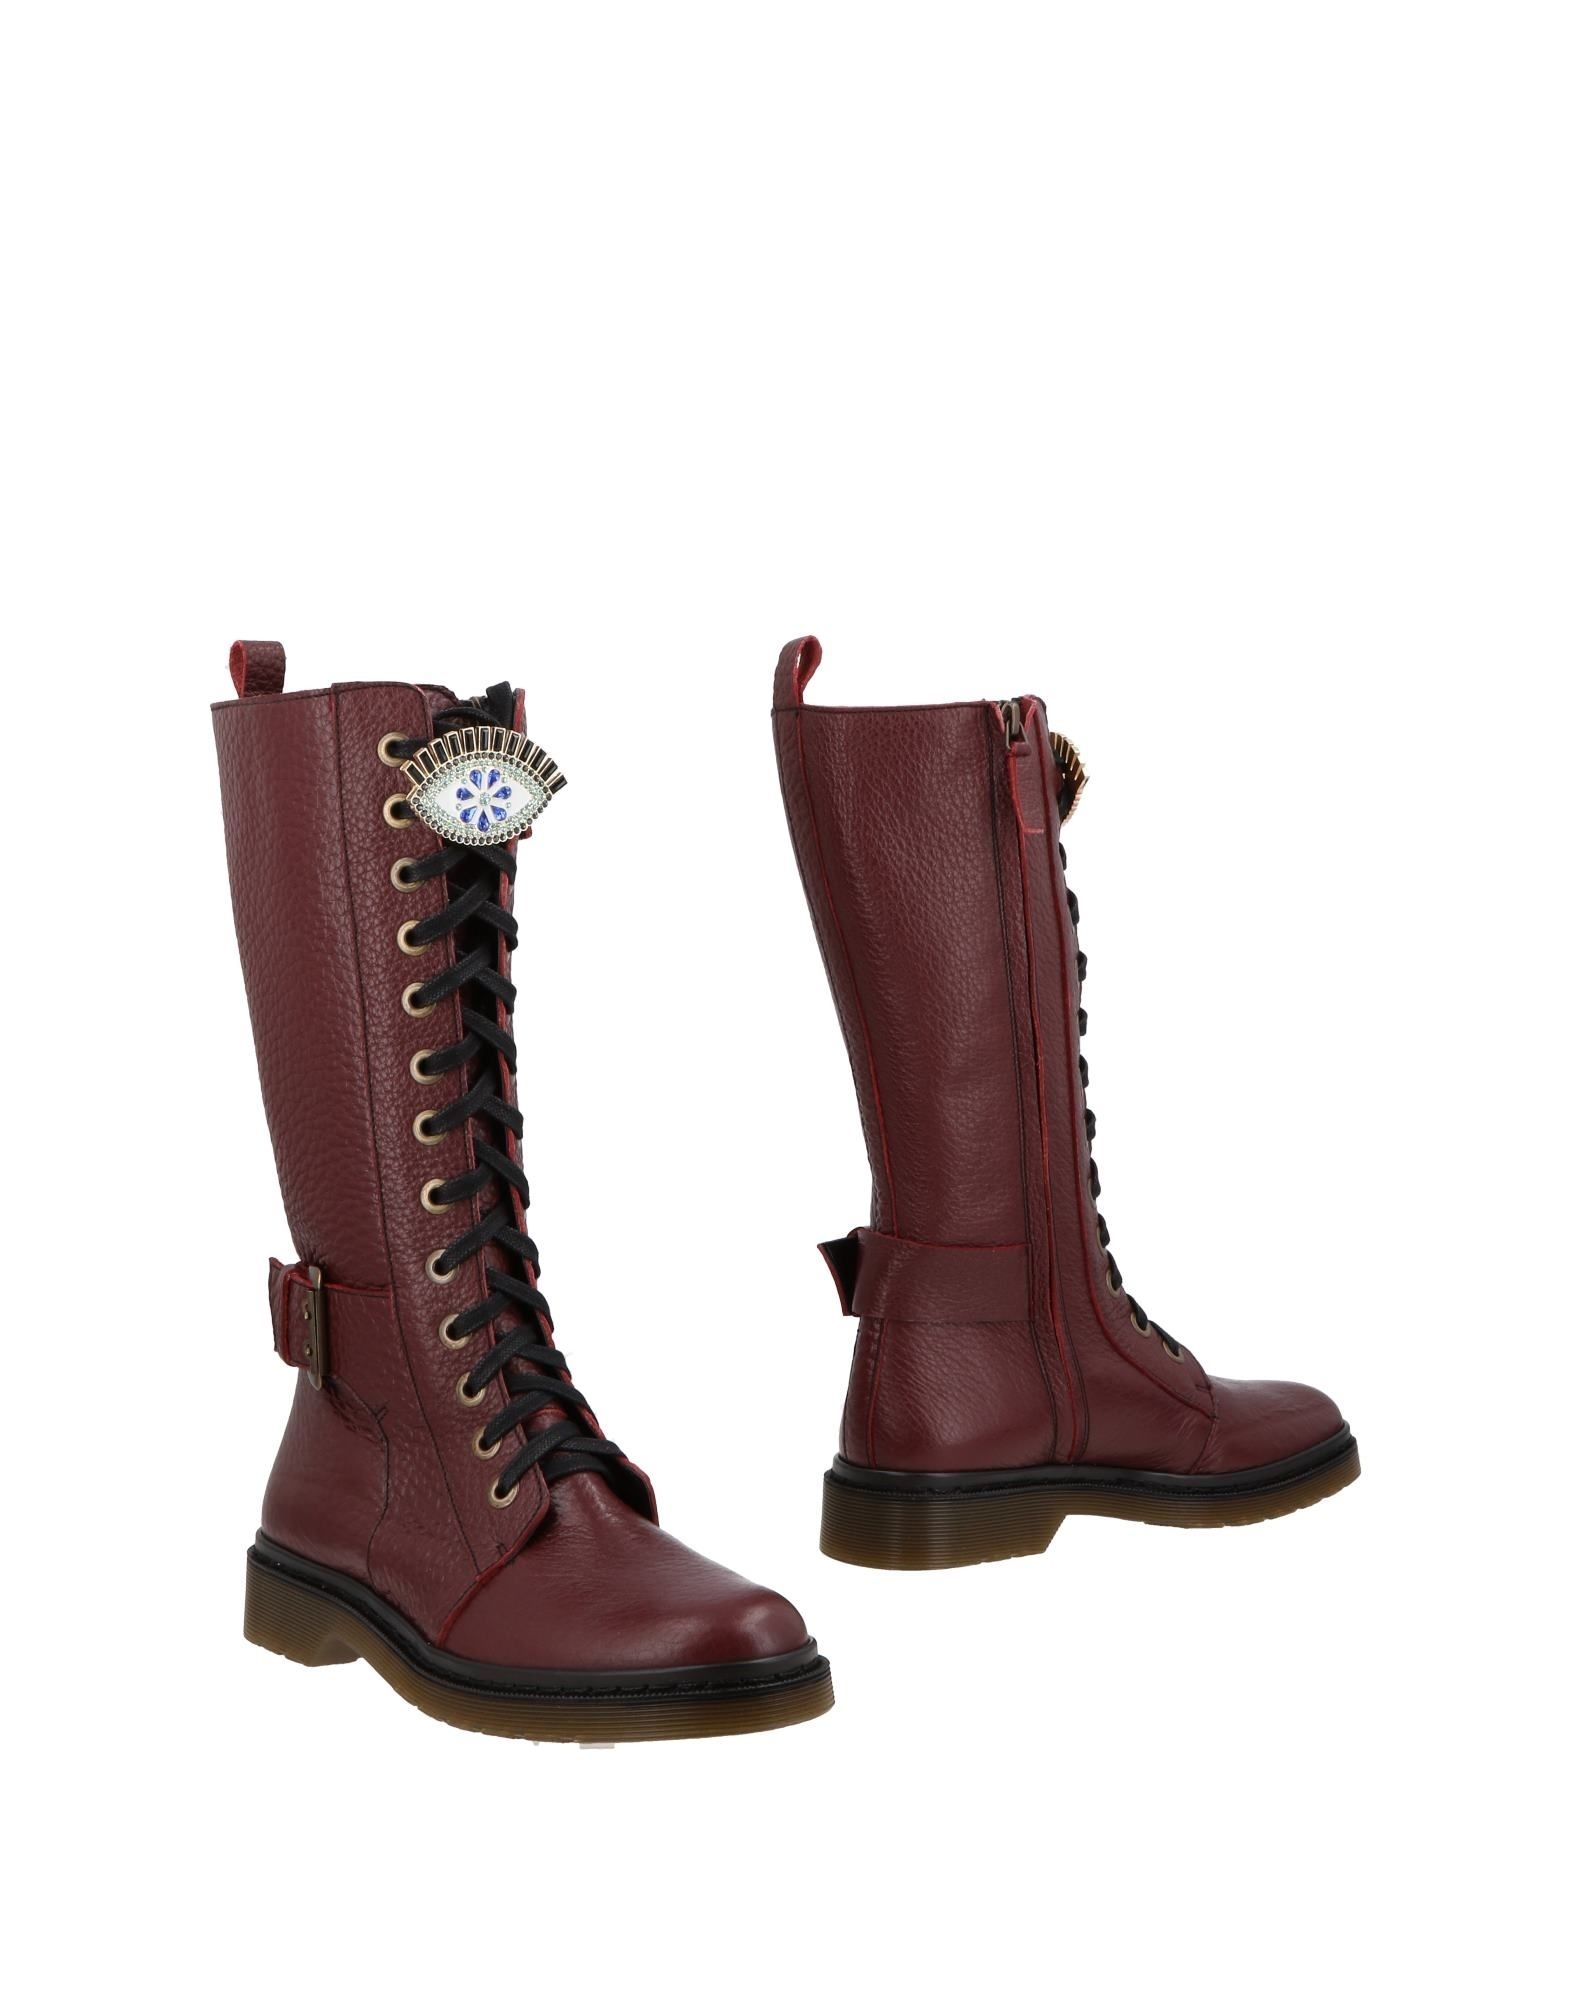 MANOUSH Boots in Maroon